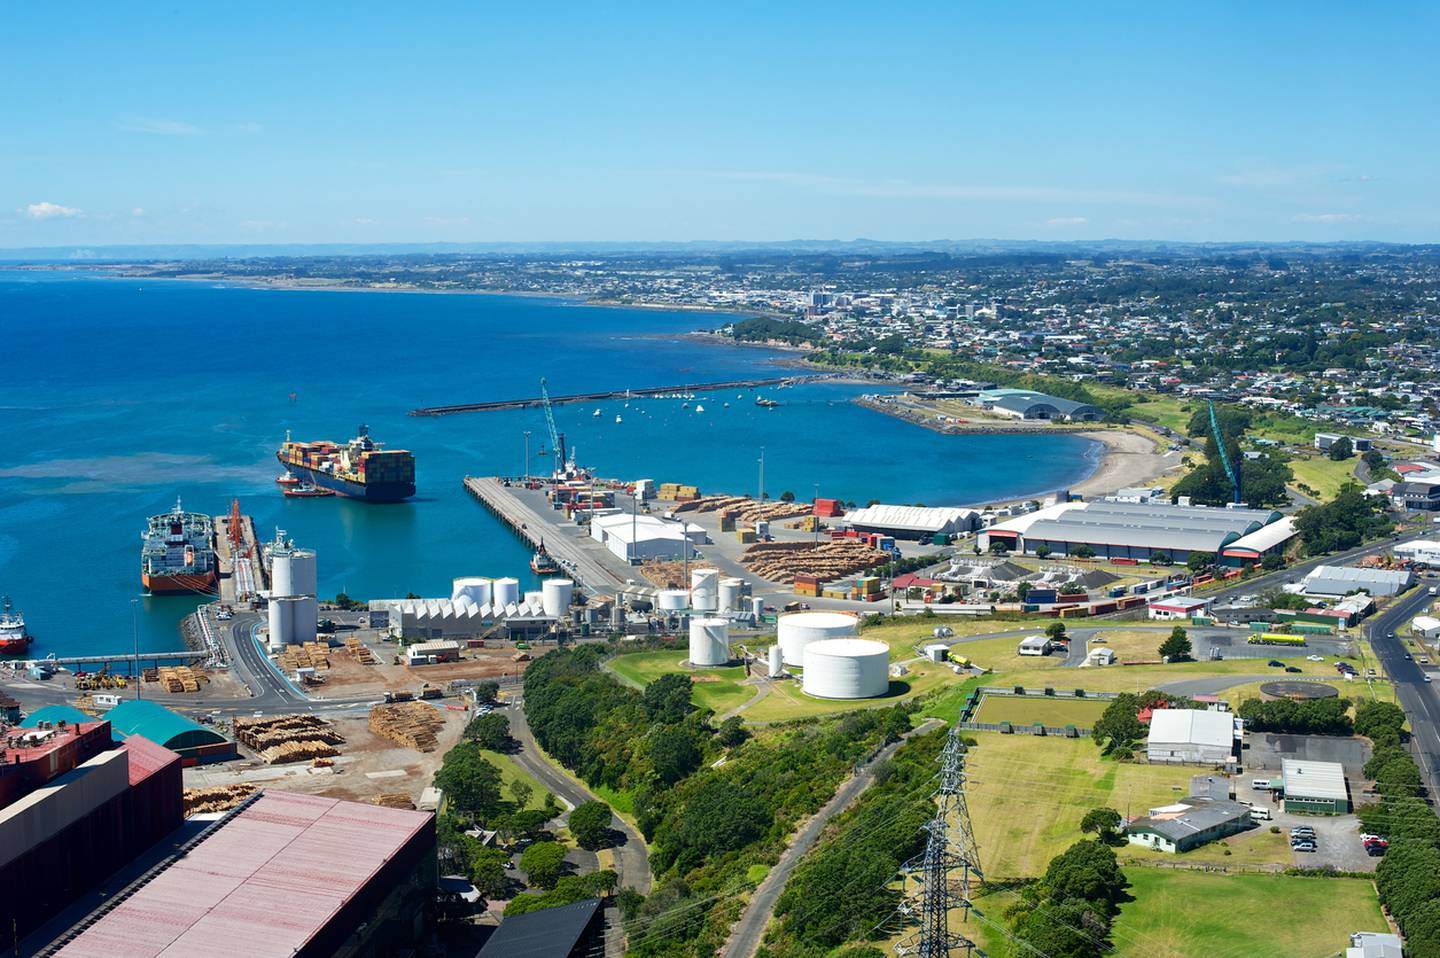 A view of the port of New Plymouth New Zealand with a container ship docking and one at the dock.